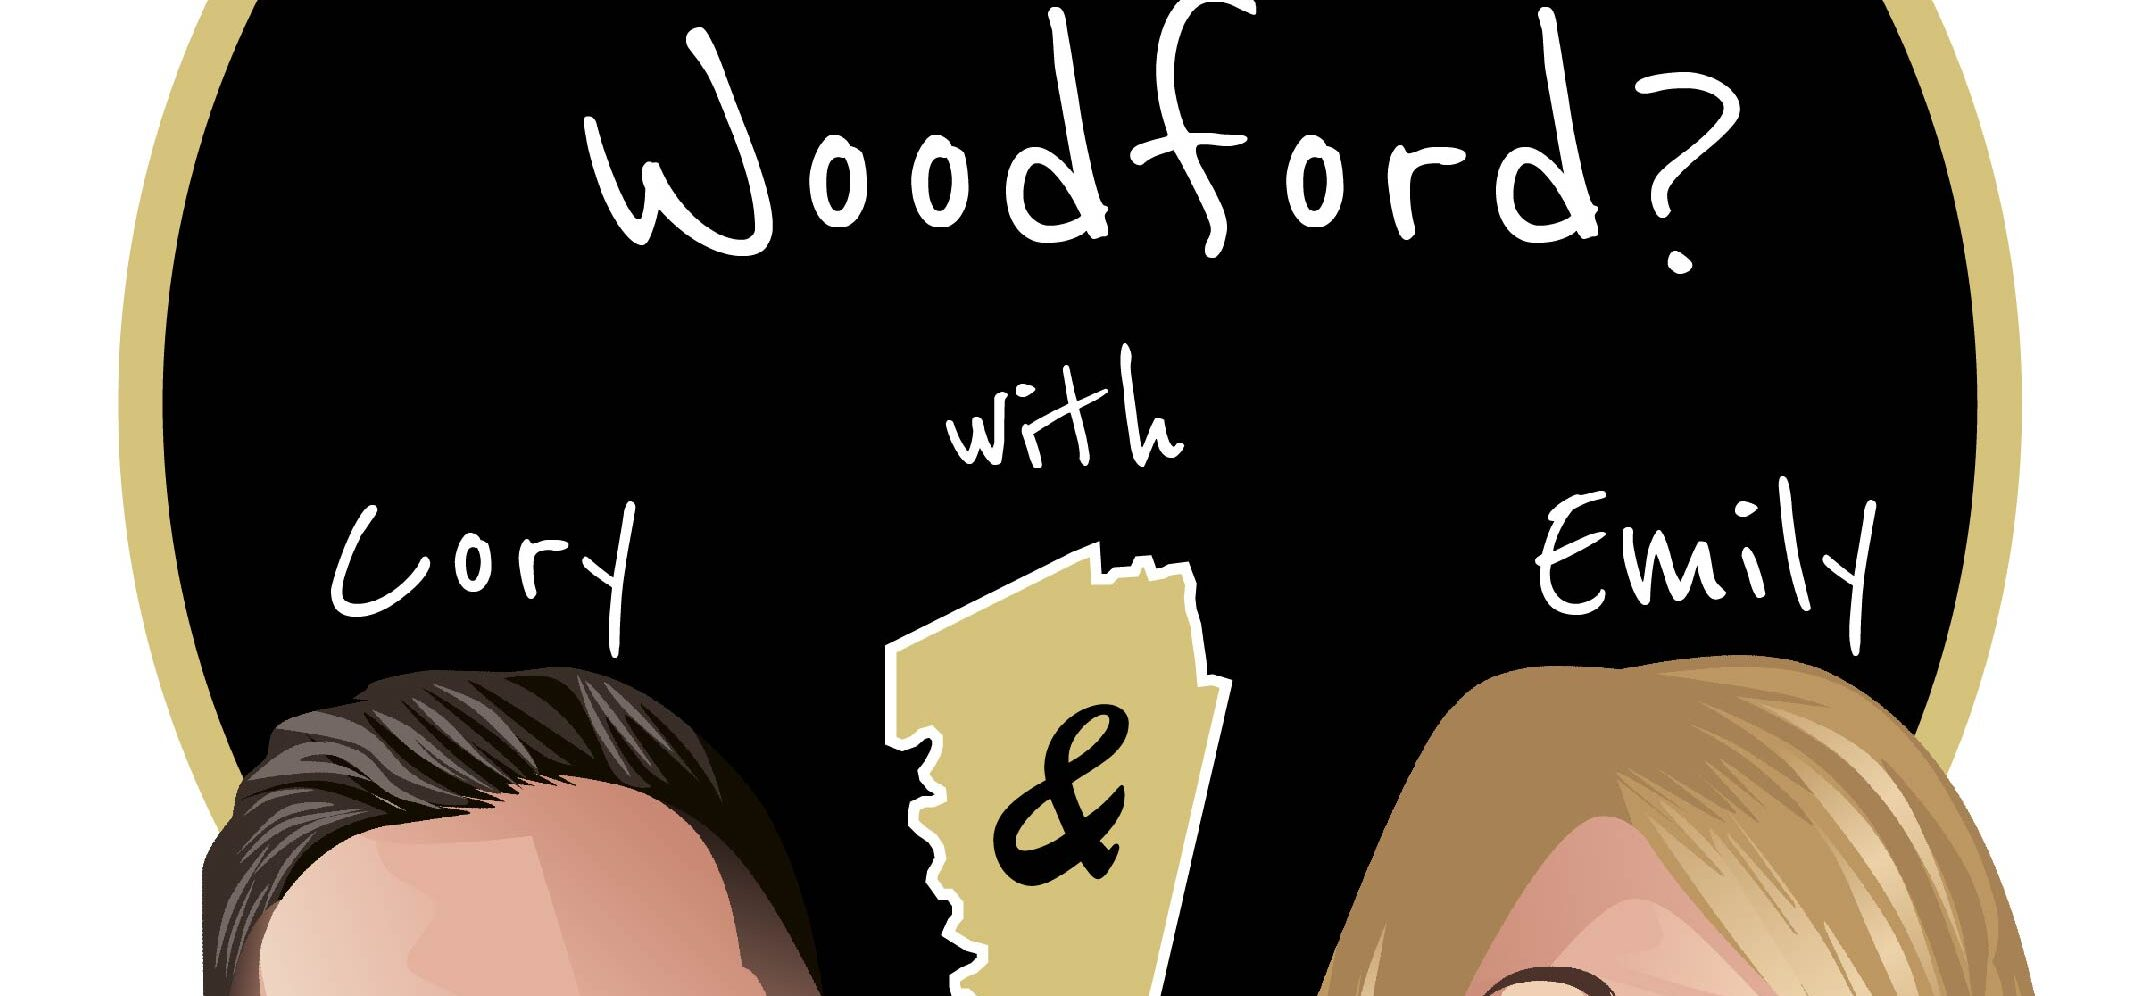 What's Up Woodford?